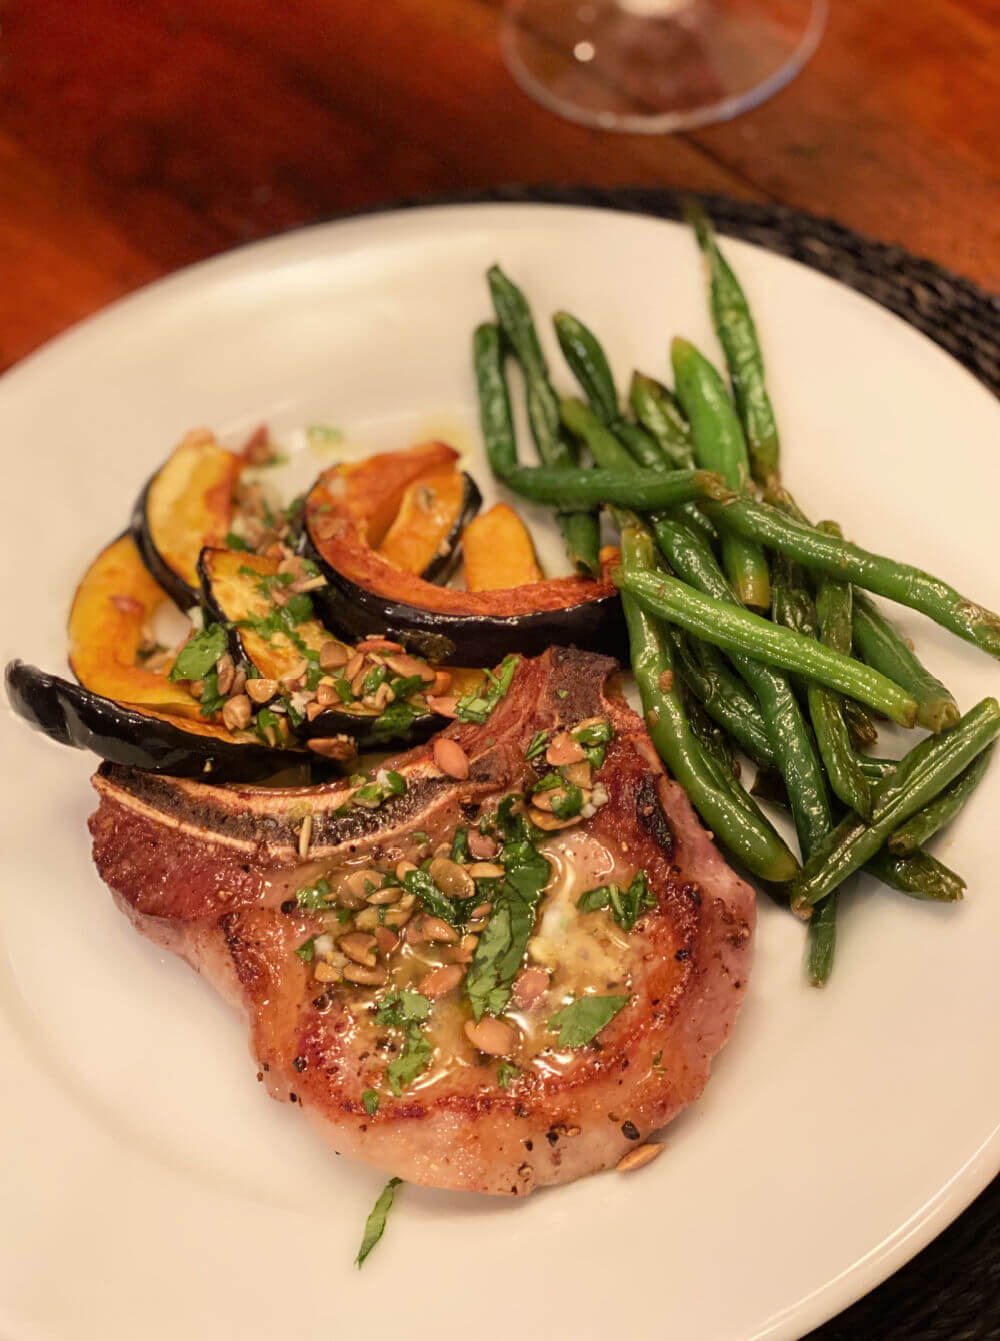 pork chop with pumpkin seed vinaigrette, roasted acorn squash and garlicky green beans